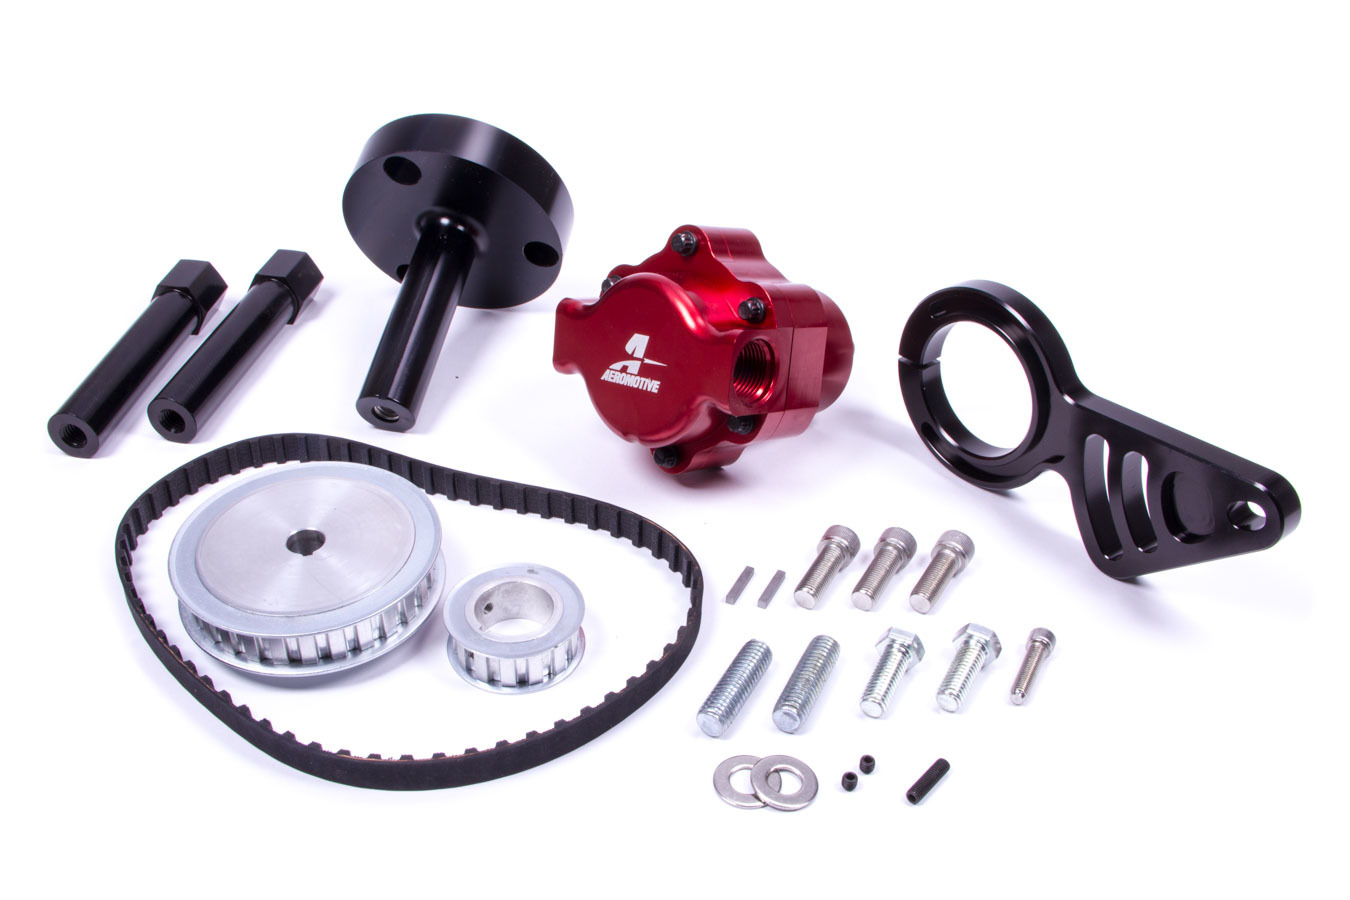 Aeromotive 17241 Fuel Pump, Billet Belt Drive, Belt or Hex Driven, In-Line, 10 AN Female O-Ring Inlet / Outlet, Red, Bracket / Pulley / Belt Included, Big Block Chevy, Kit